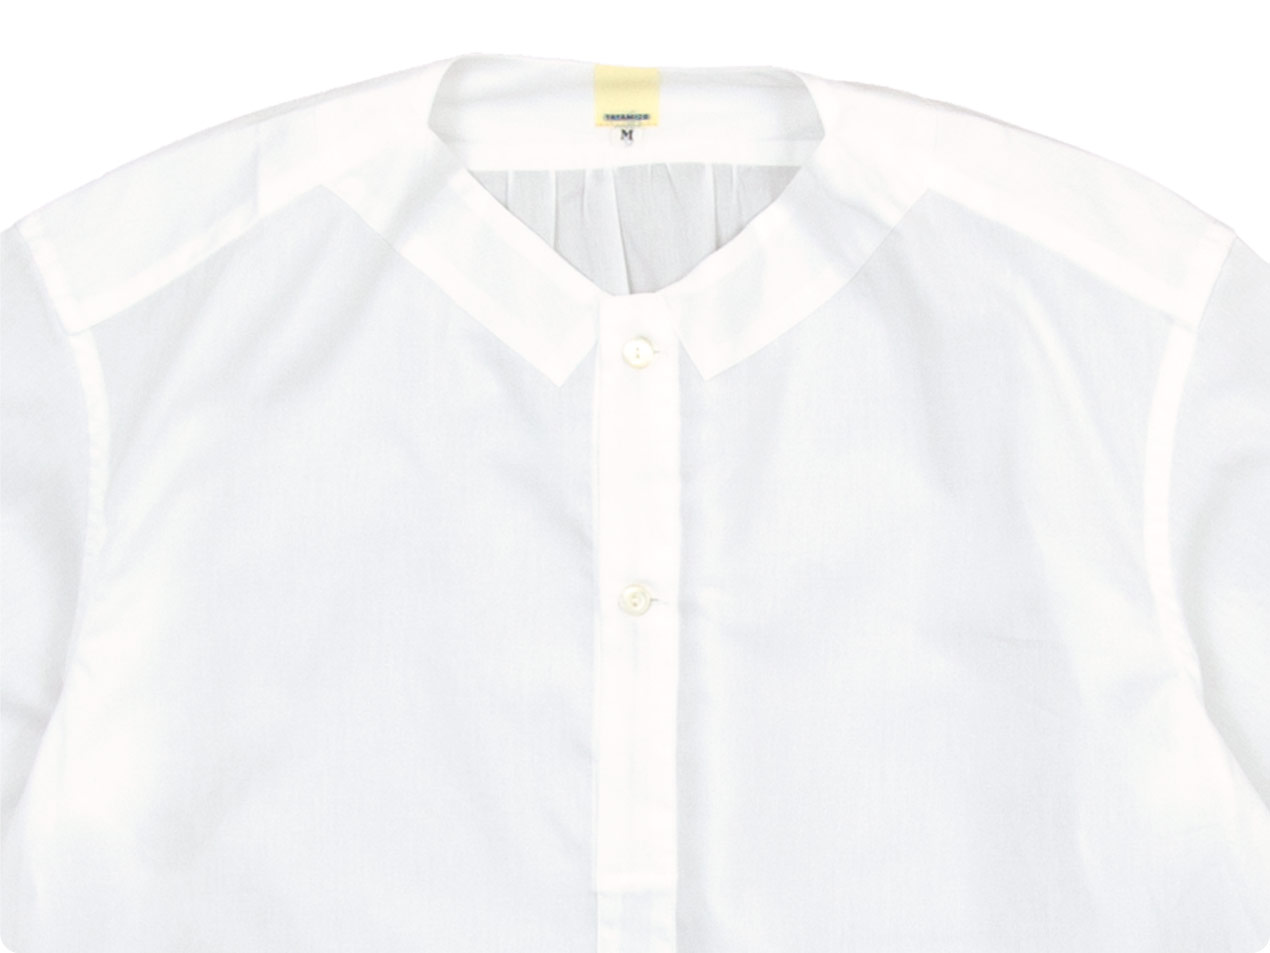 TATAMIZE NO COLLAR SHIRTS